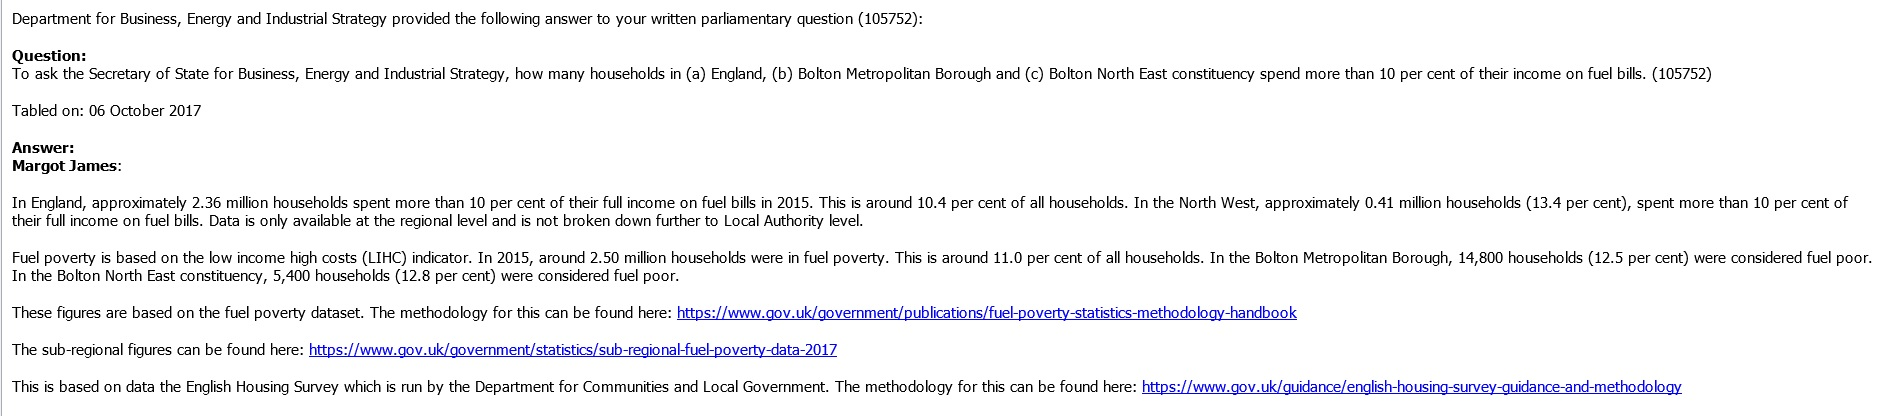 Fuel_poverty_question.jpg